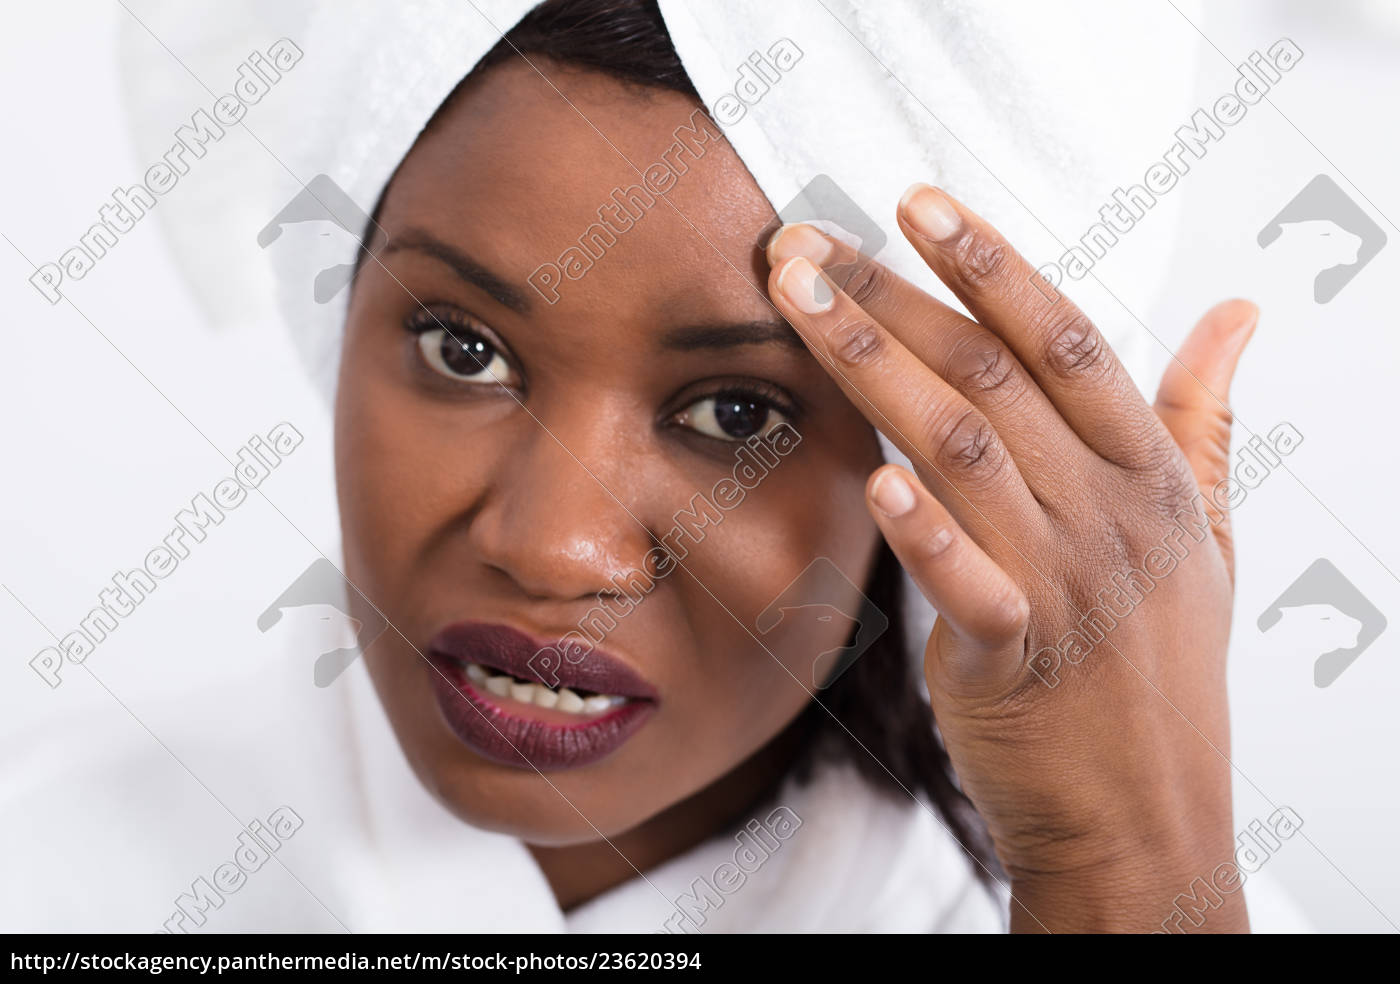 woman, with, pimple, on, forehead - 23620394